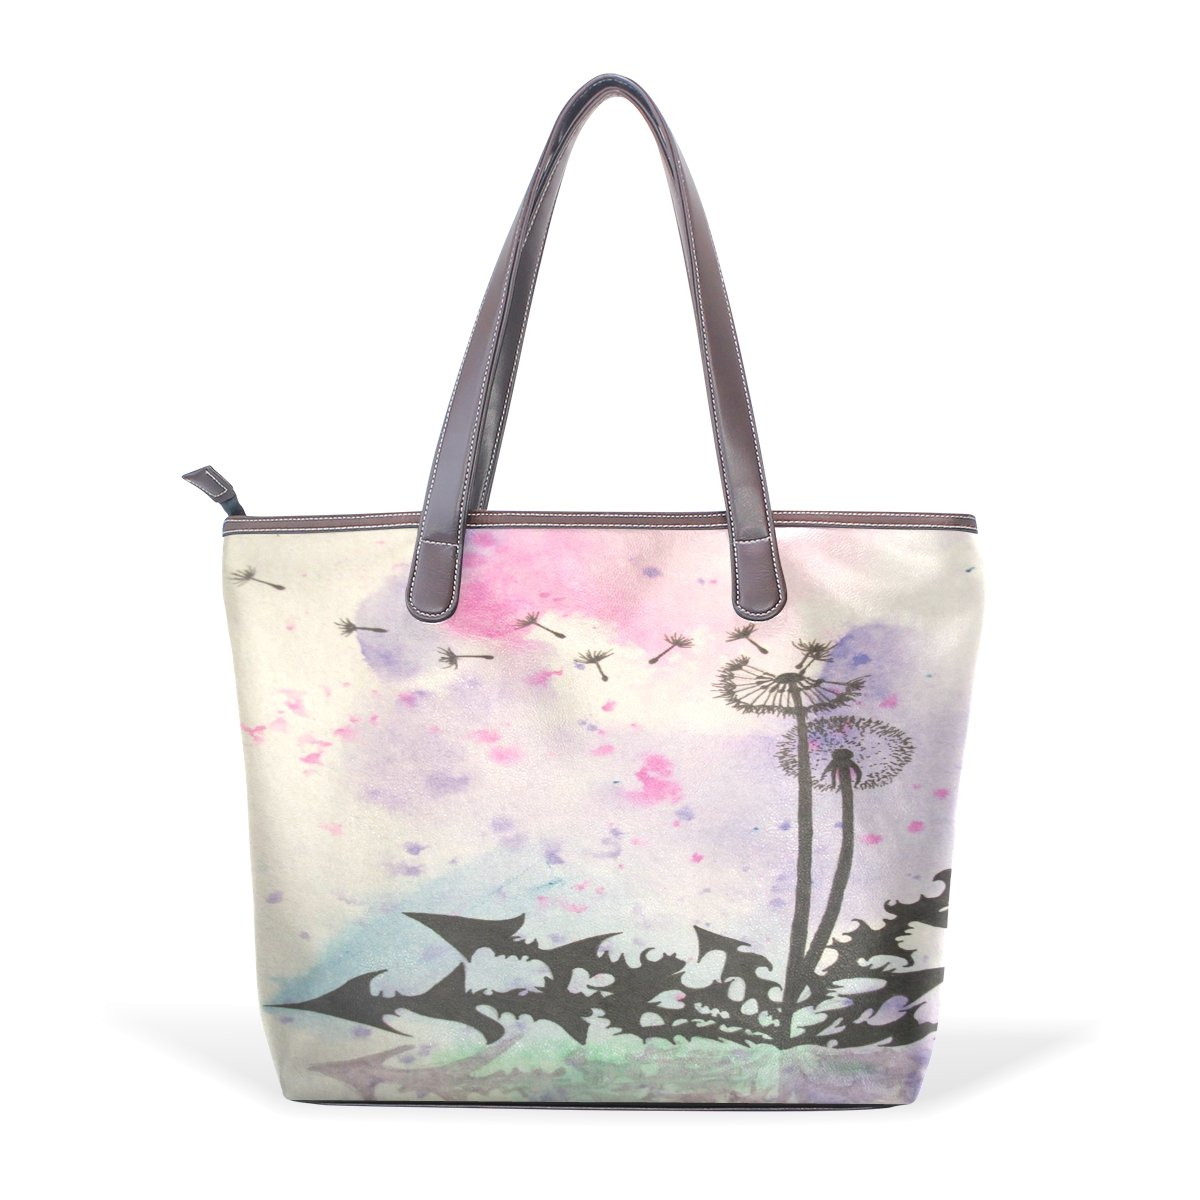 Ye Store Dandelion Watercolor Lady PU Leather Handbag Tote Bag Shoulder Bag Shopping Bag